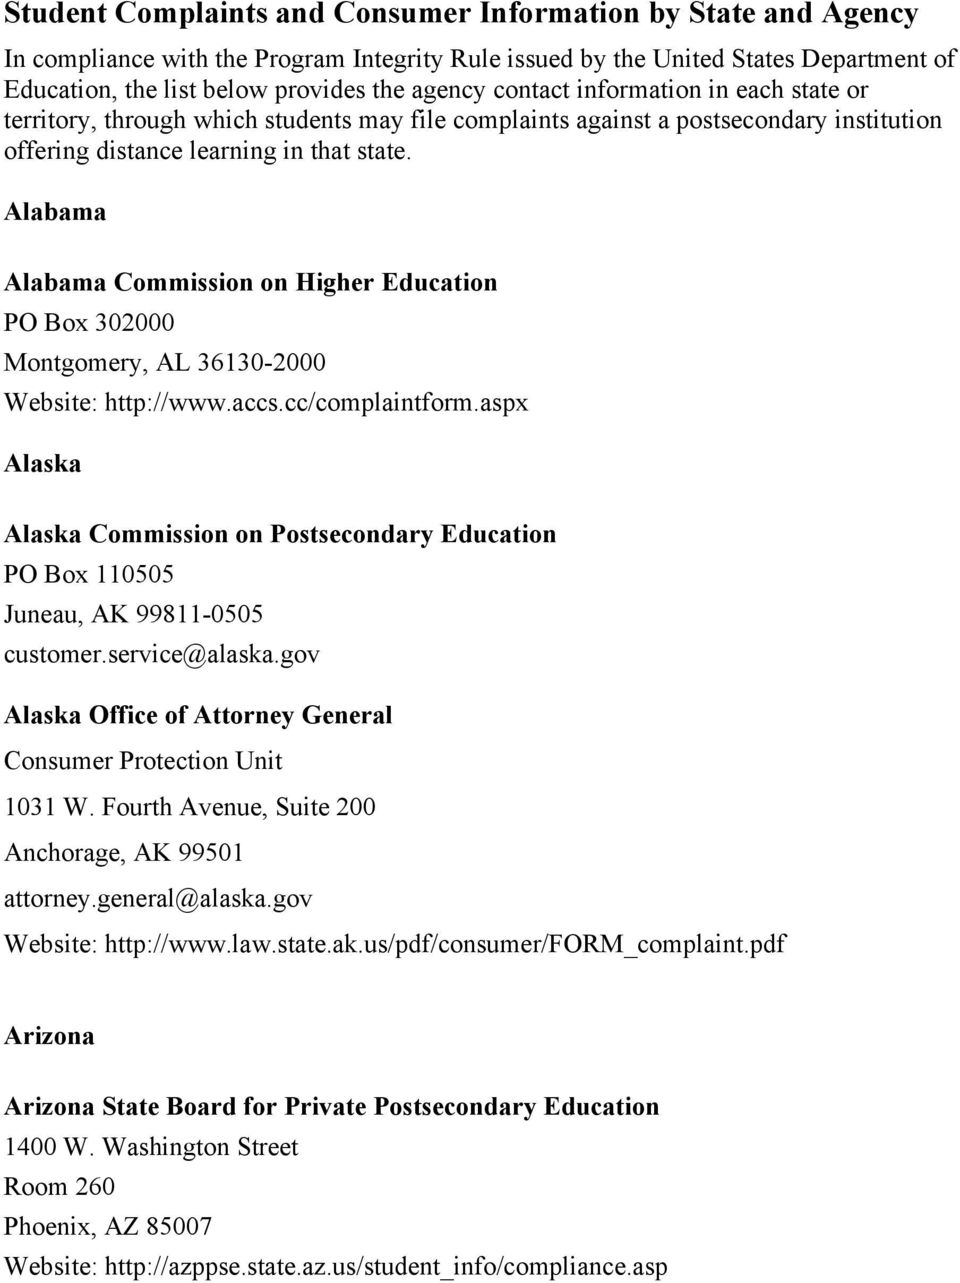 Alabama Alabama Commission on Higher Education PO Box 302000 Montgomery, AL 36130-2000 http://www.accs.cc/complaintform.